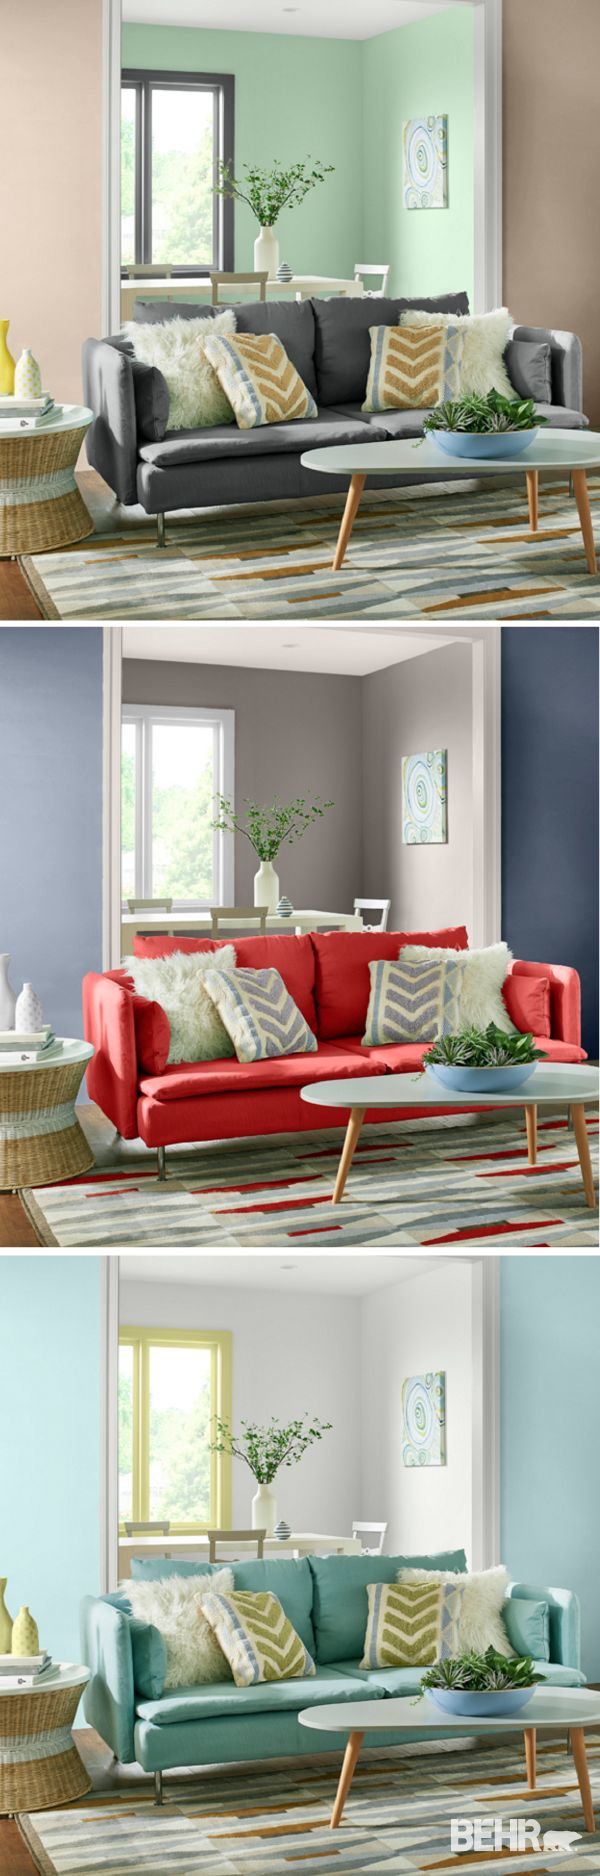 81 best images about behr 2017 color trends on pinterest - Paint colour combinations for living room ...